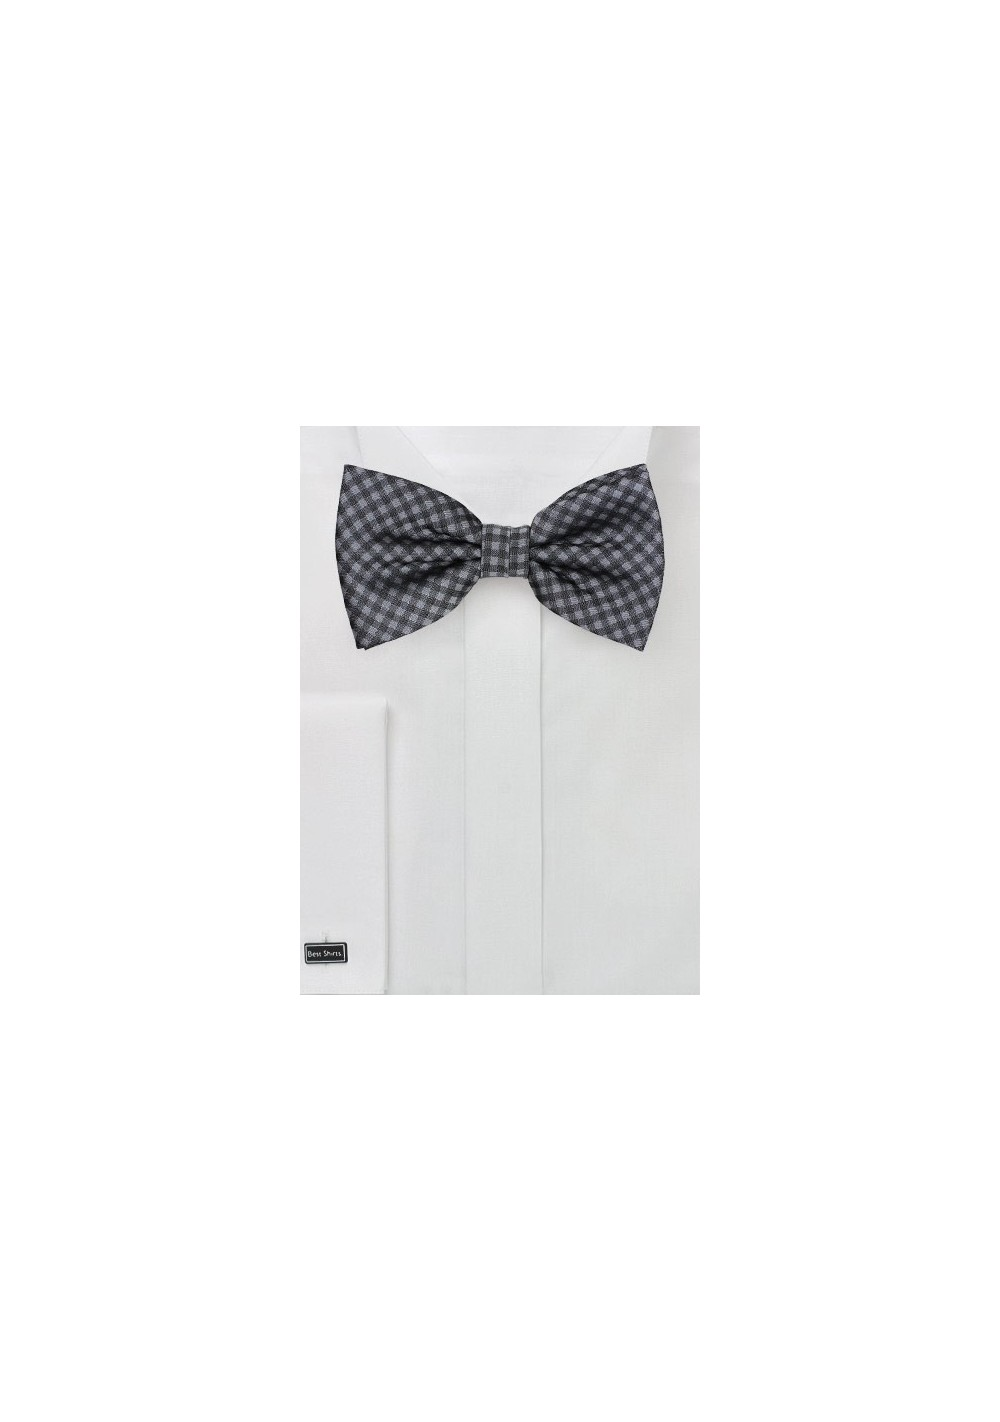 Gingham Bow Tie in Heather Gray